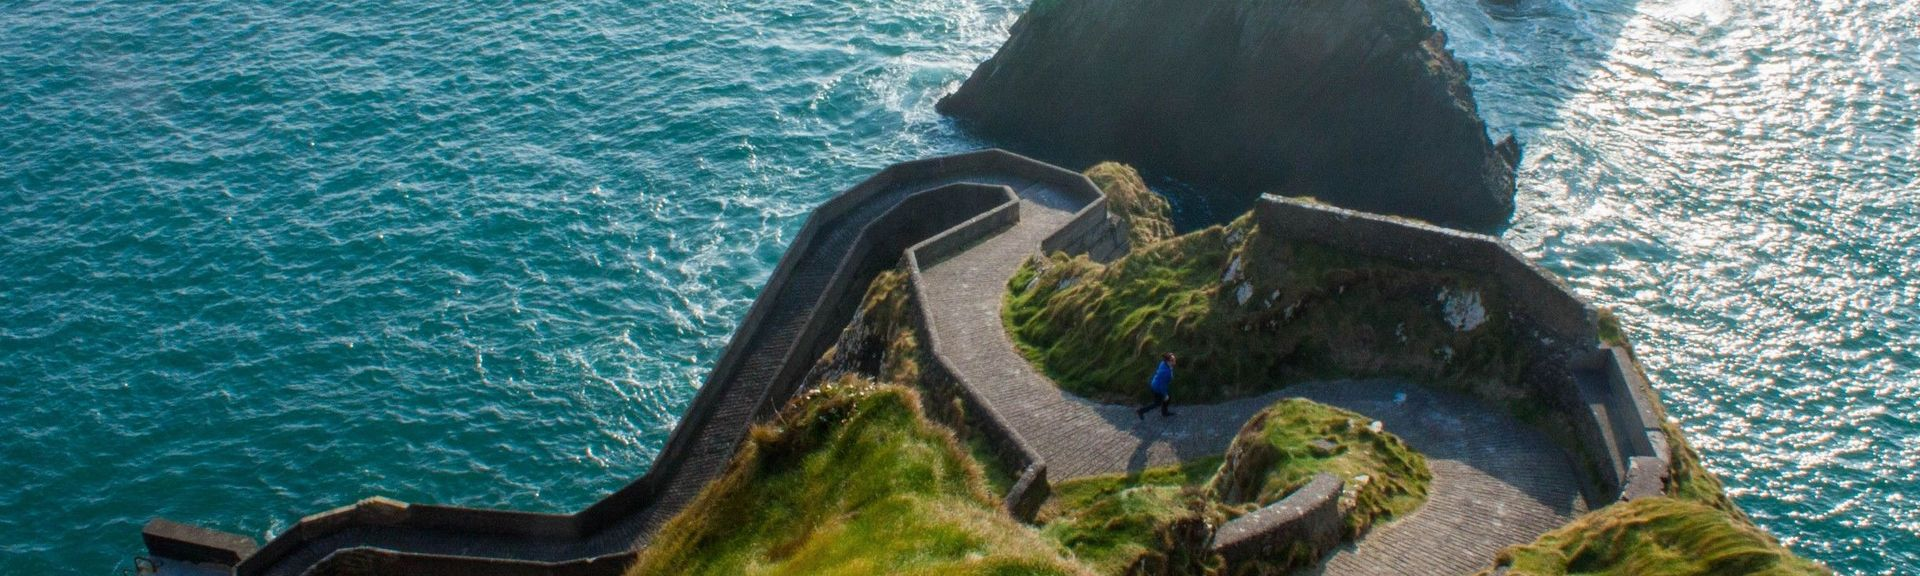 Dunquin, County Kerry, Ireland